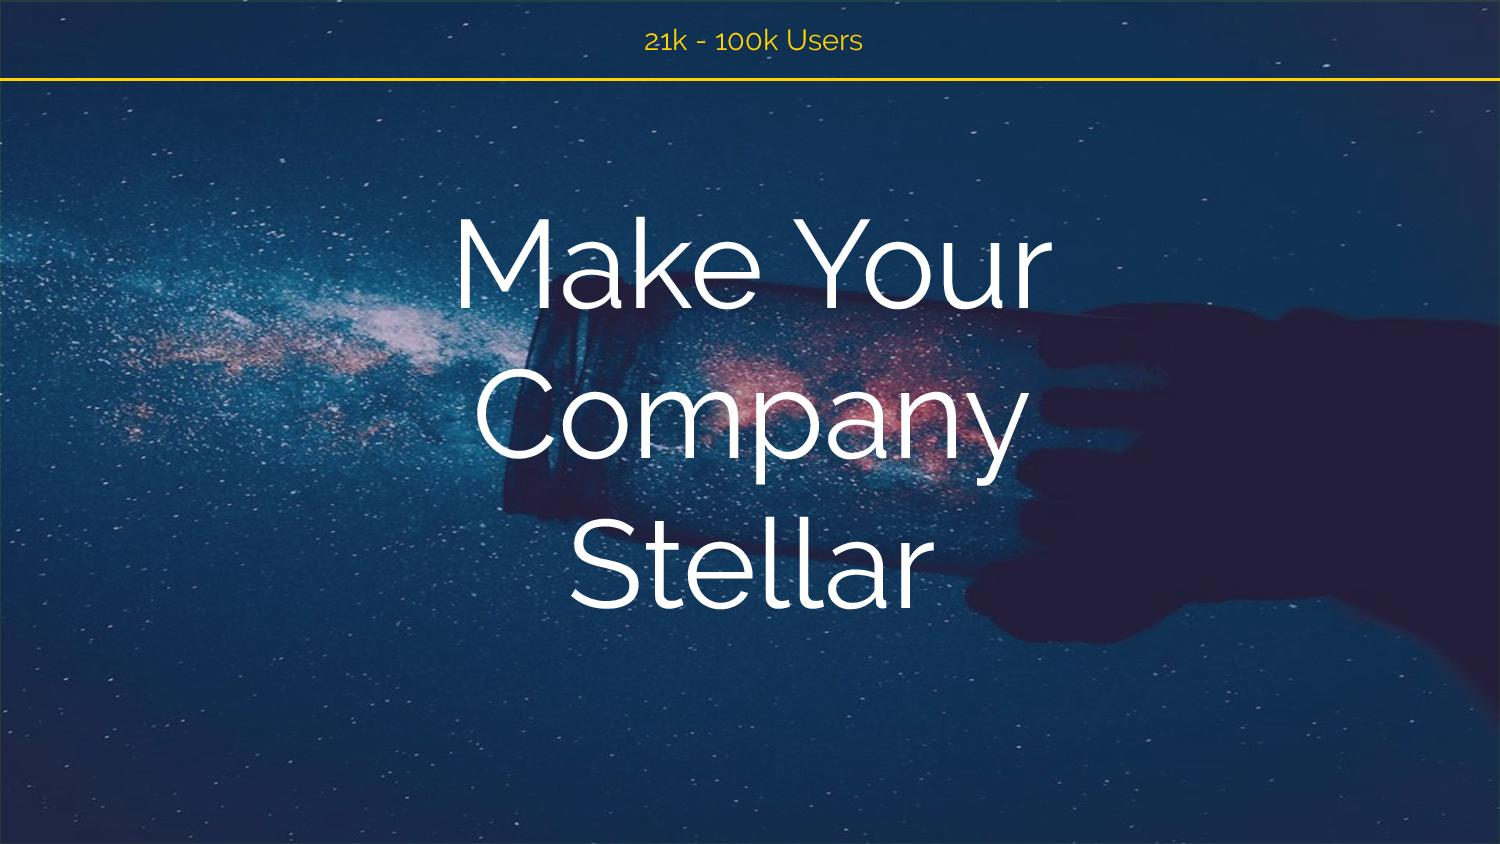 21k to 100k users Make Your Company Stellar [Image: starfield]